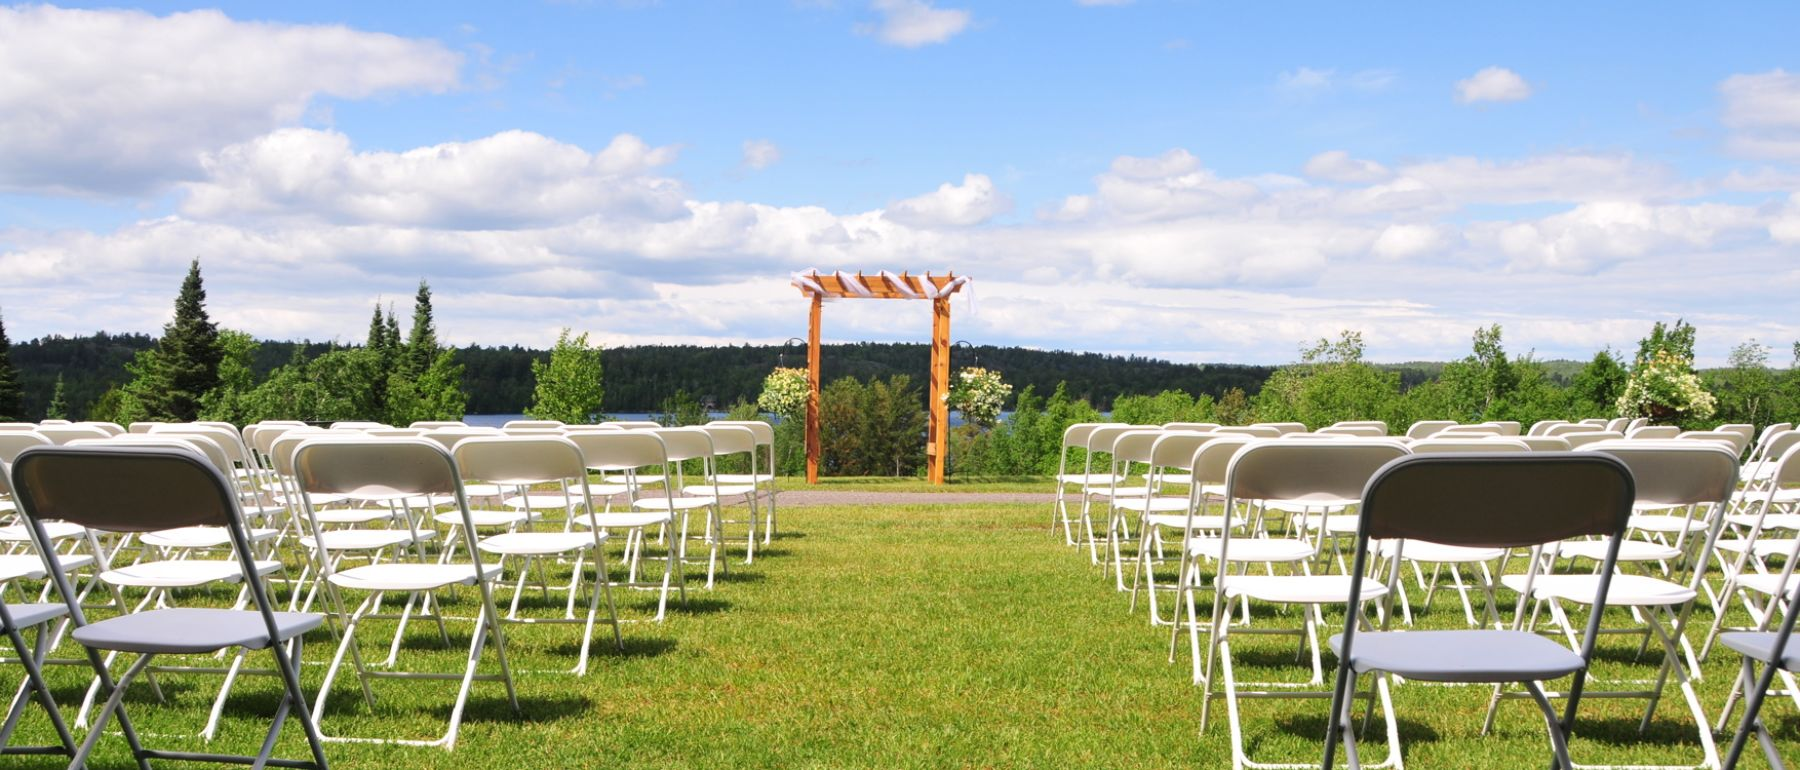 Wedding Outside chair setup